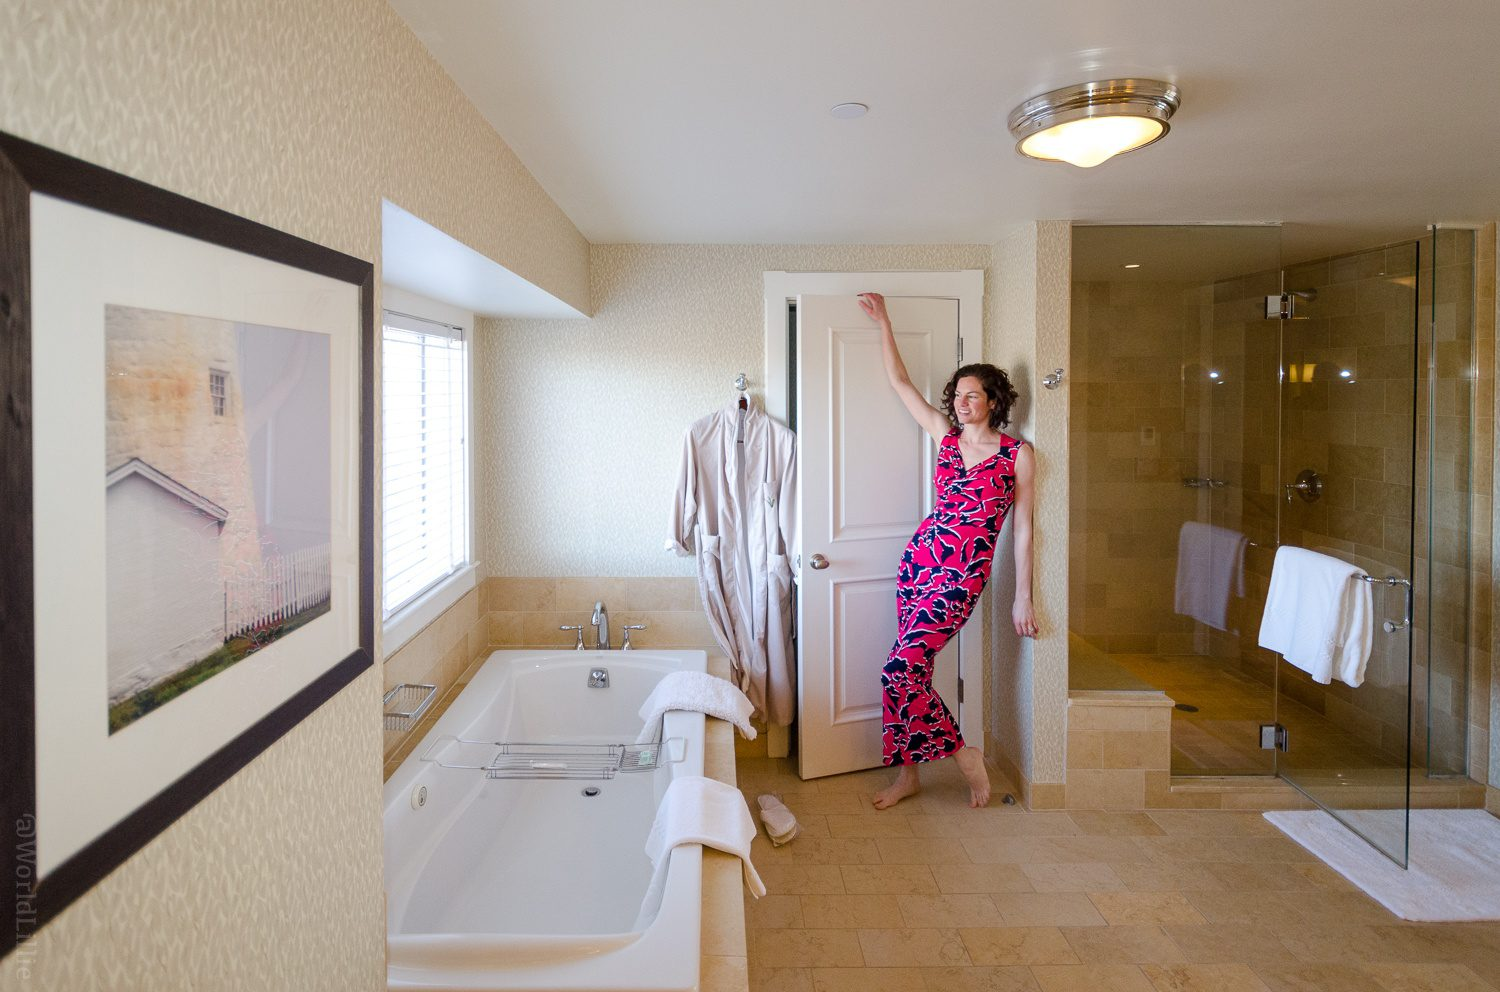 Luxury hotel bathroom: Inn by the Sea Maine Resort